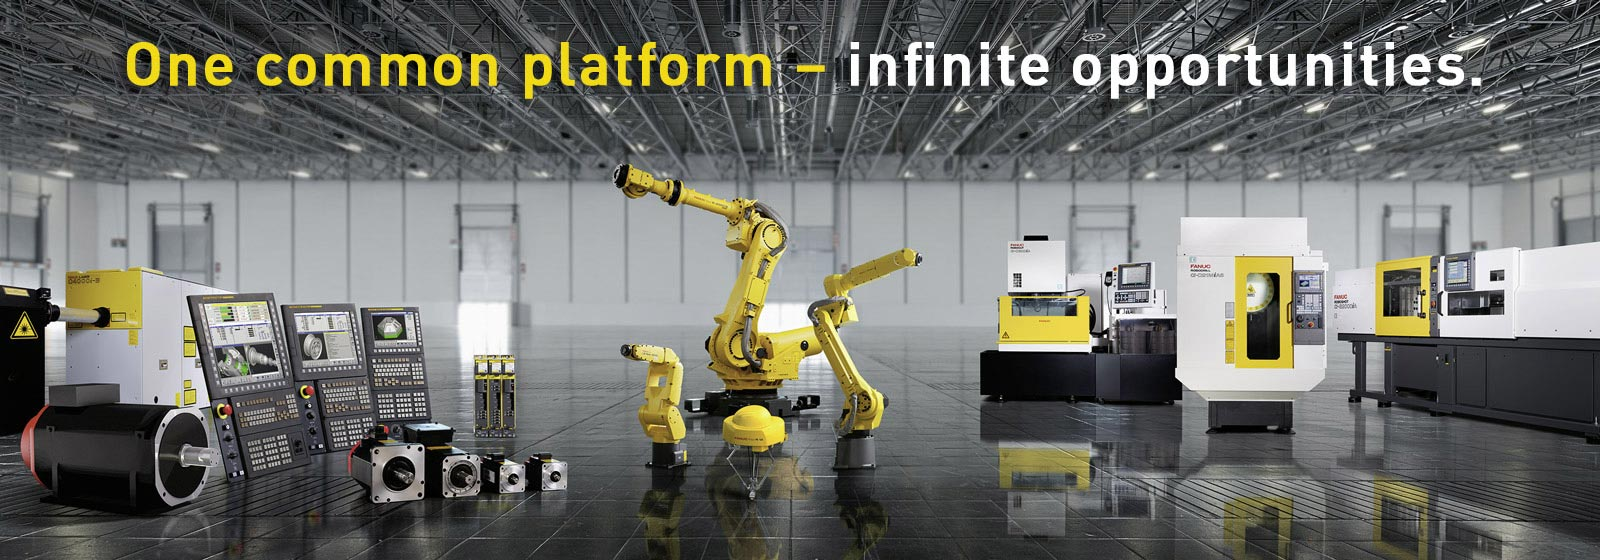 One common platform - infinite opportunities